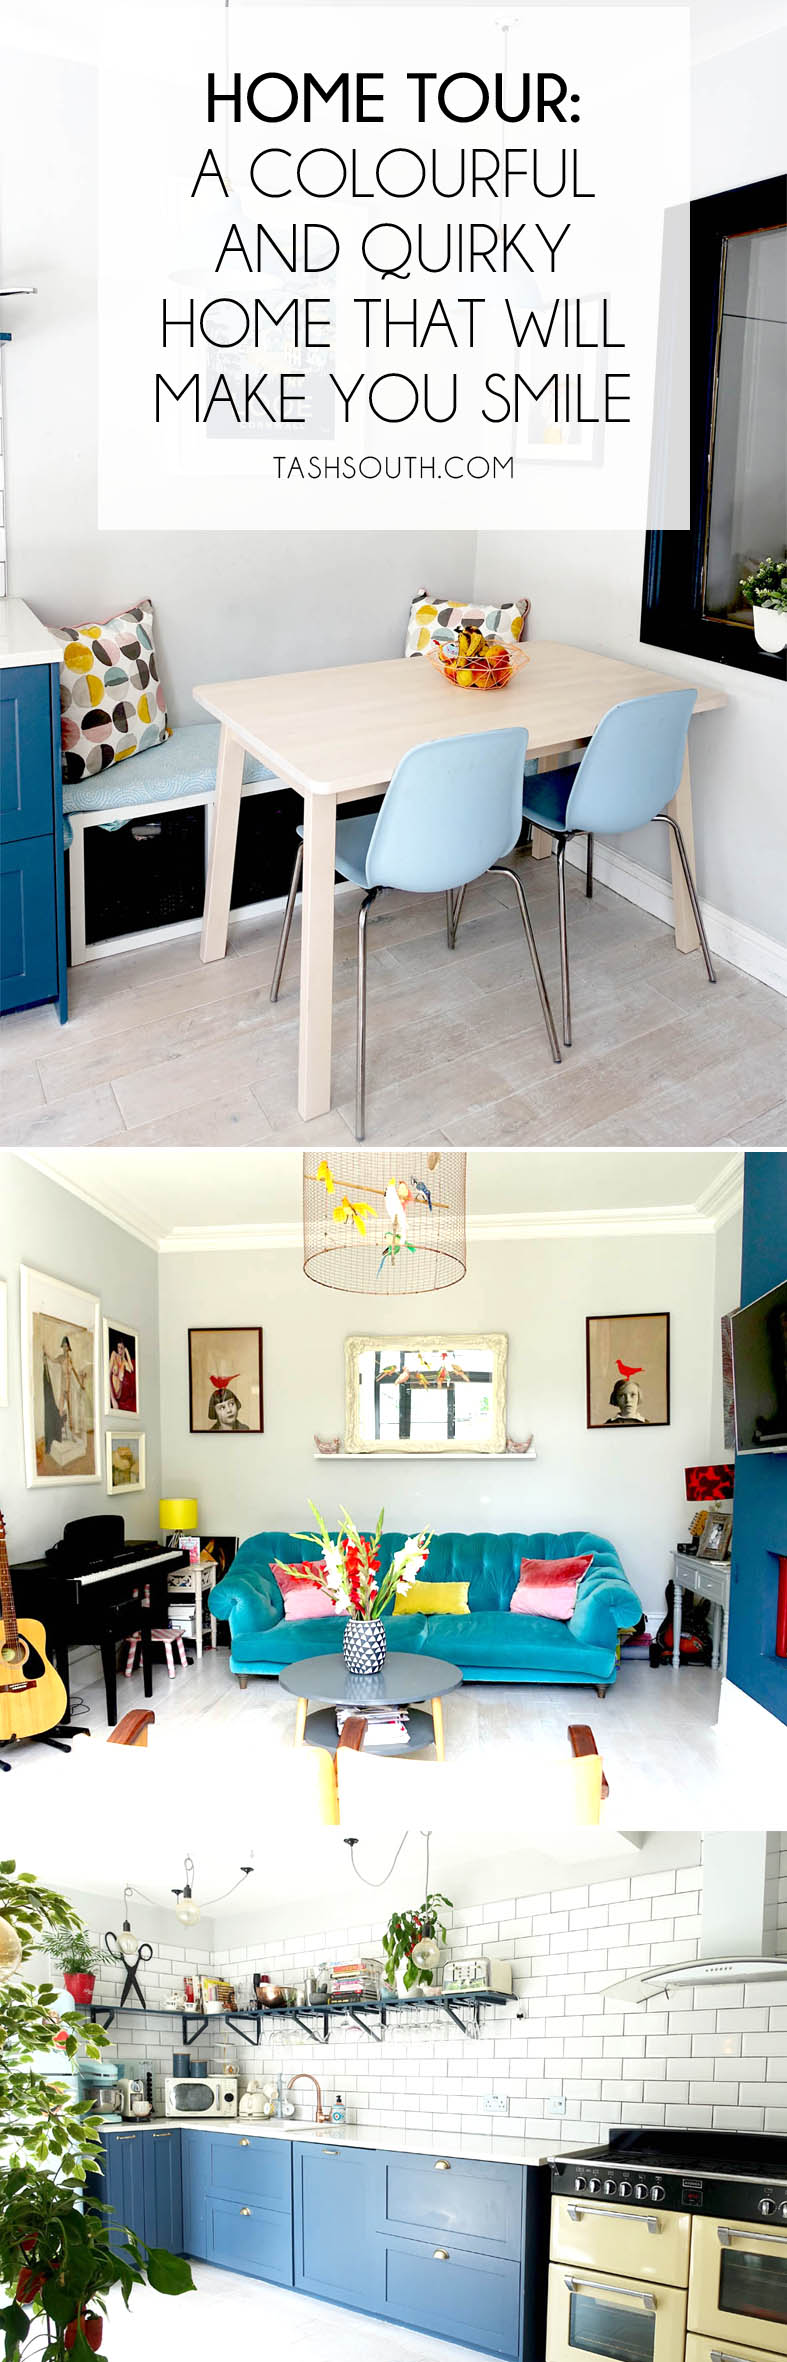 A colourful quirky home that will make you smile